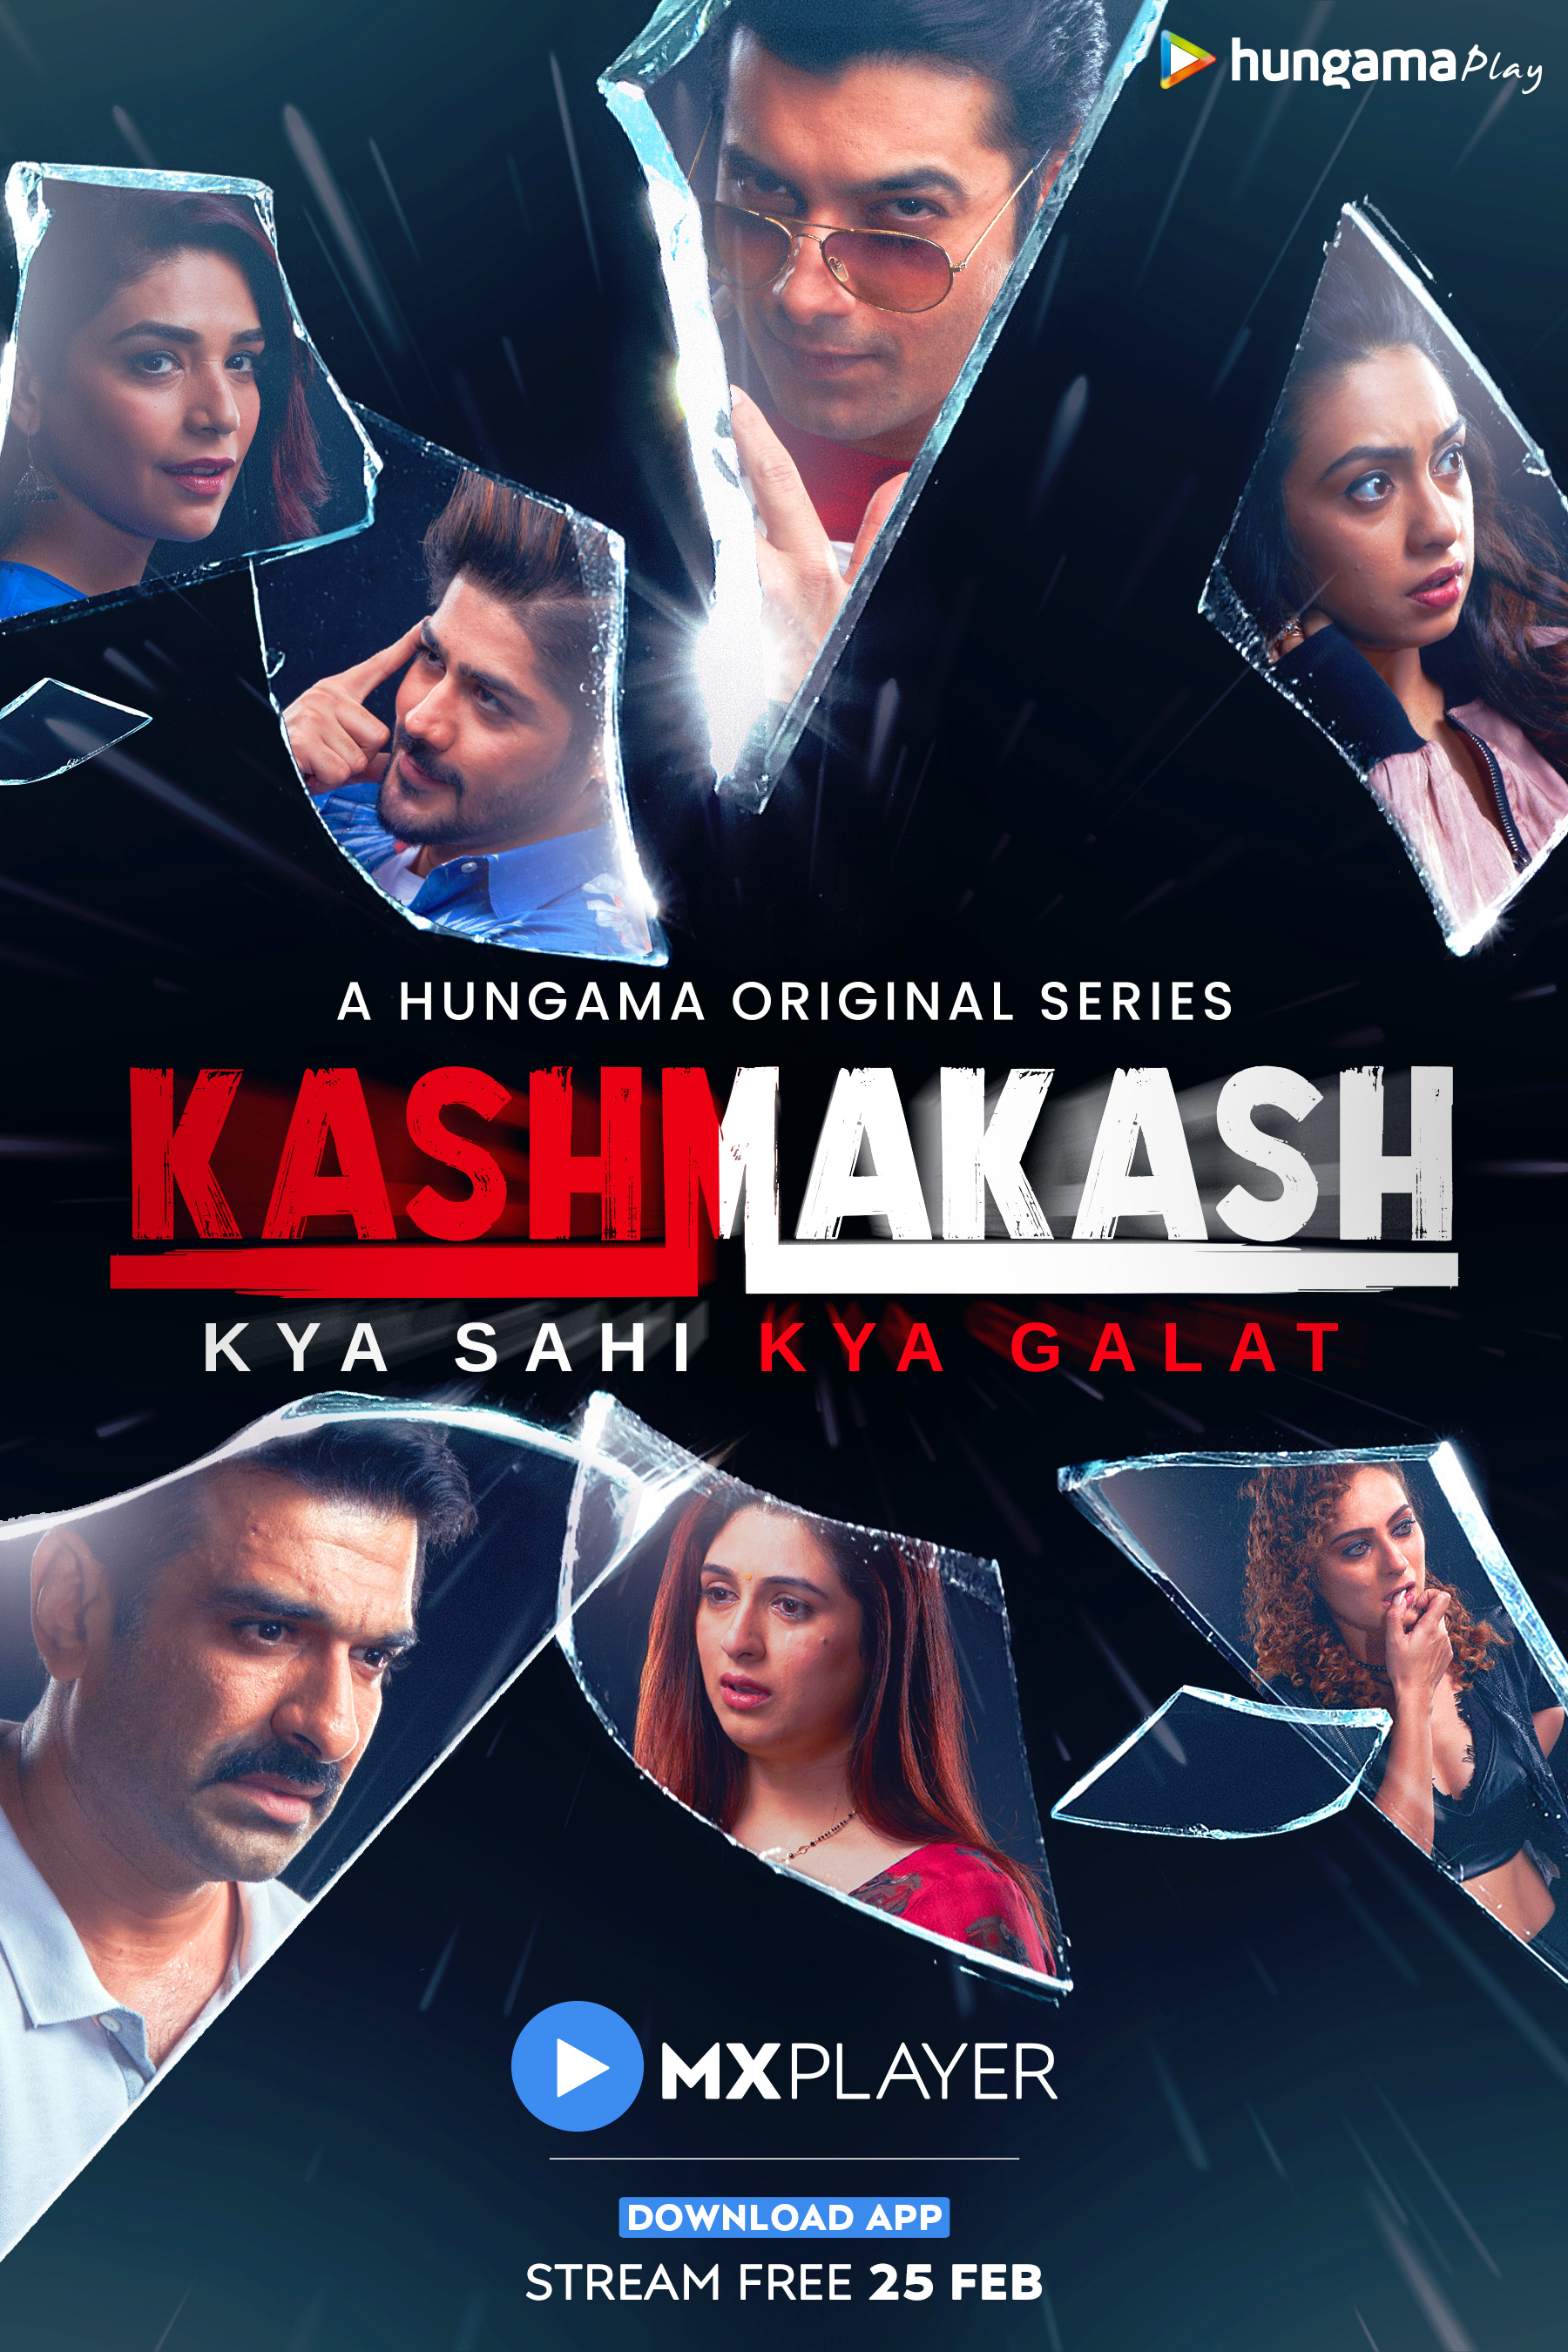 THE 5 EPISODE SERIES KASHMAKASH ON MX PLAYER TAKES YOU ON A ...